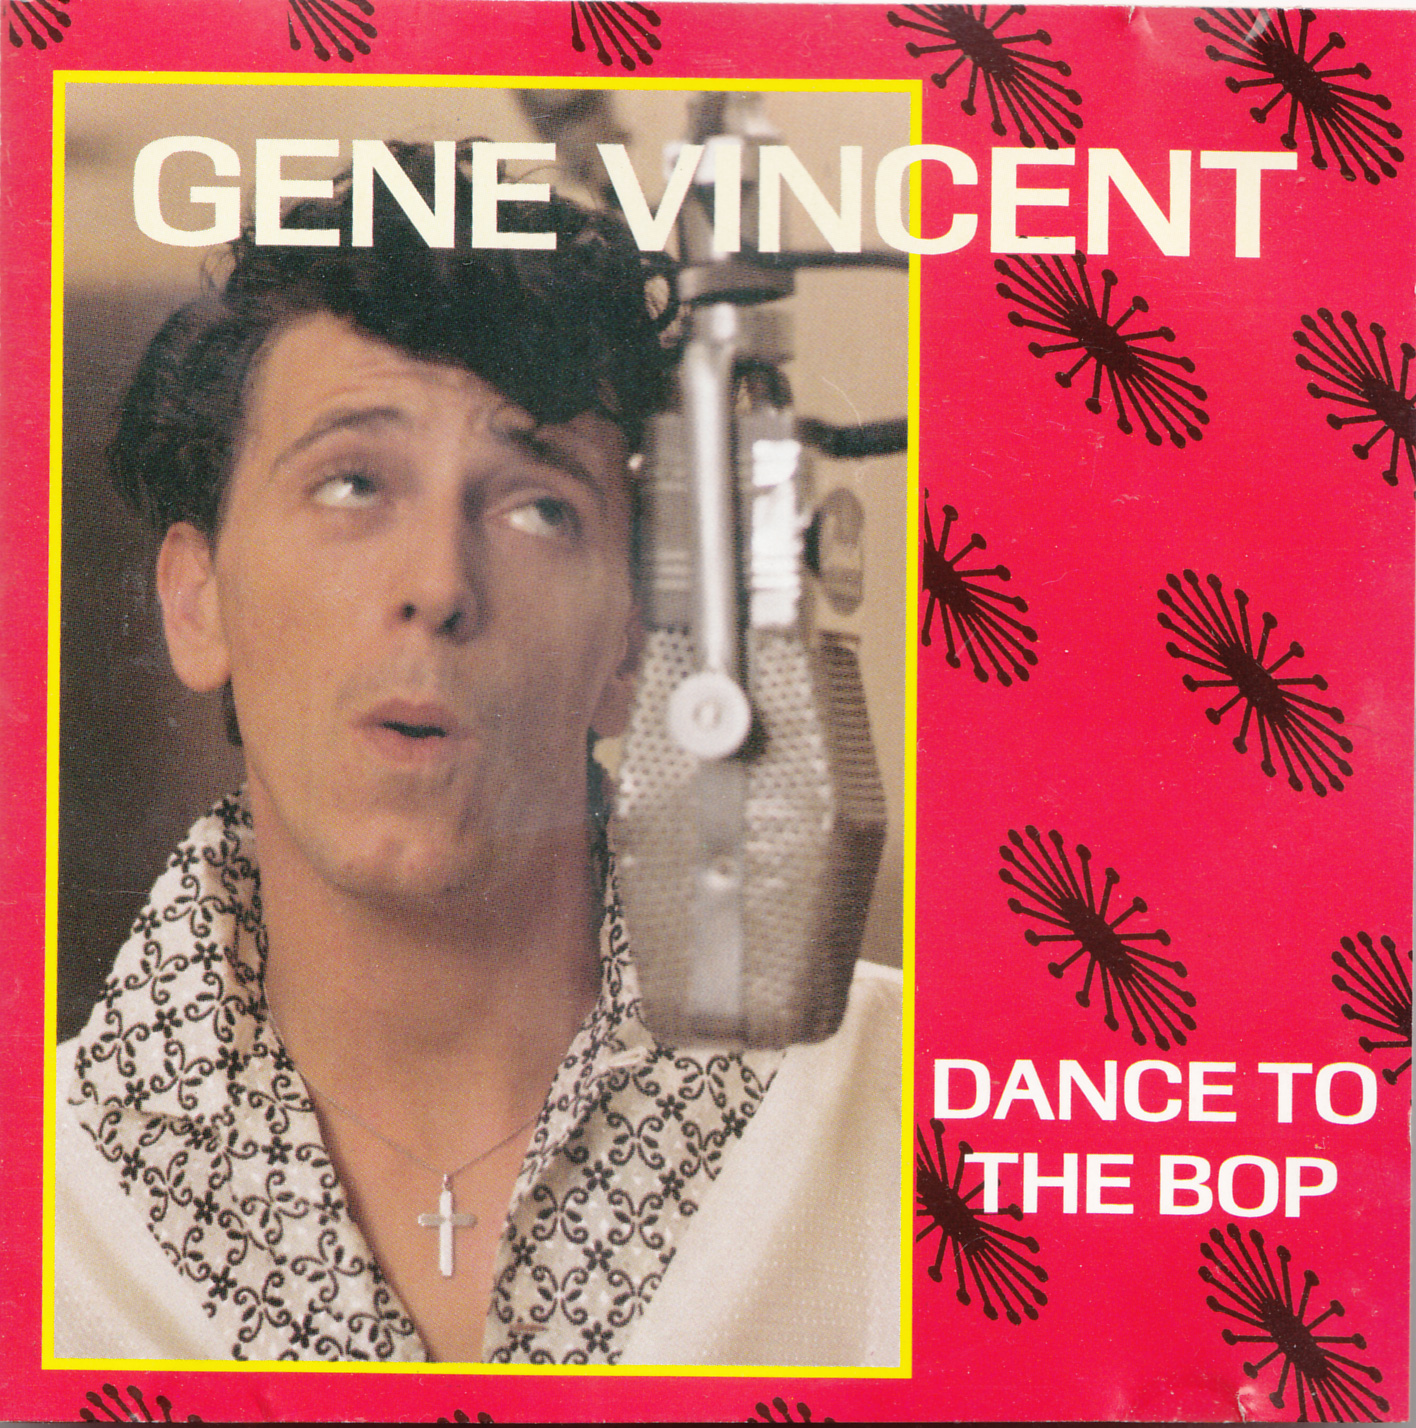 Gene Vincent Rock 'N' Roll History Vol. 2